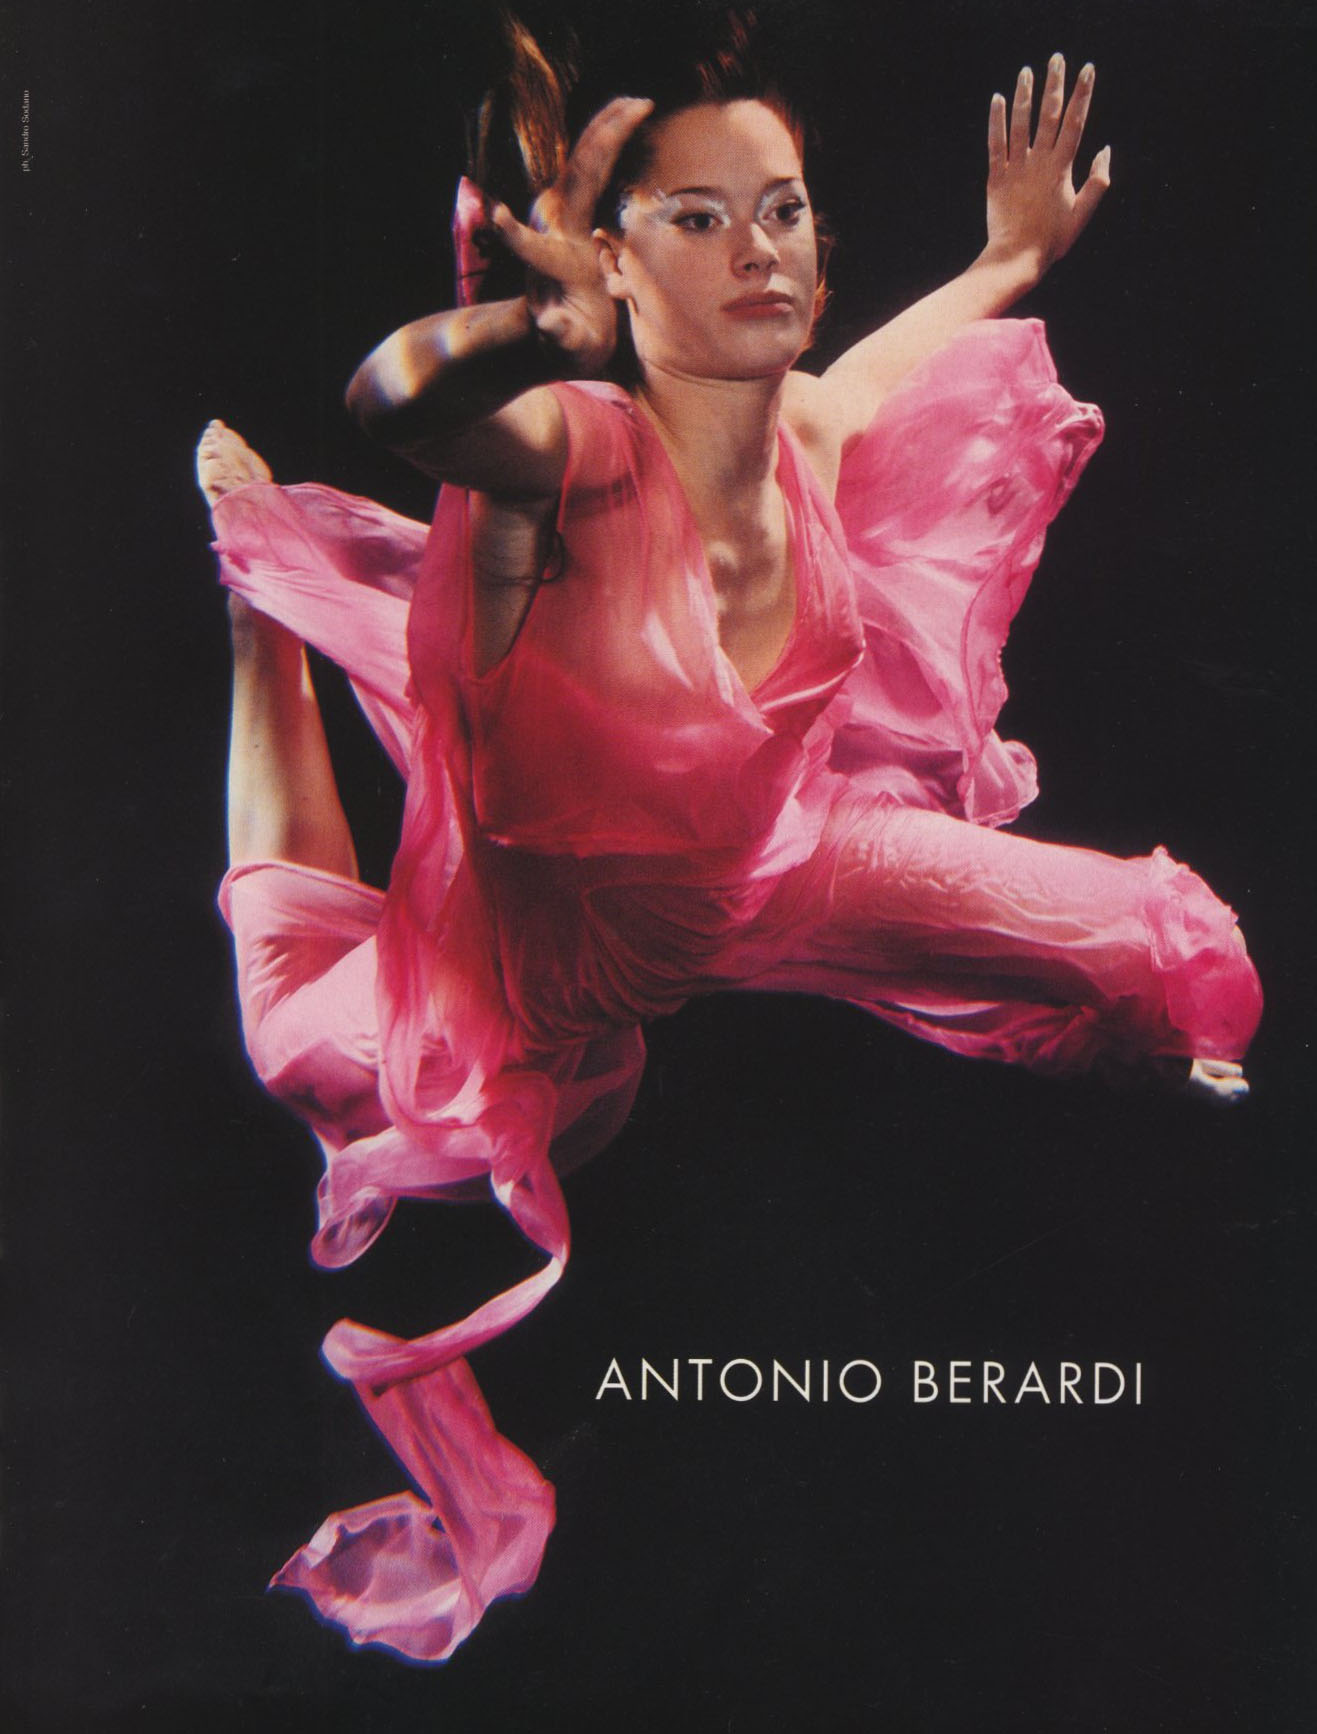 antonio berardi ad photography sandro sodano dutch 26 march april 2000